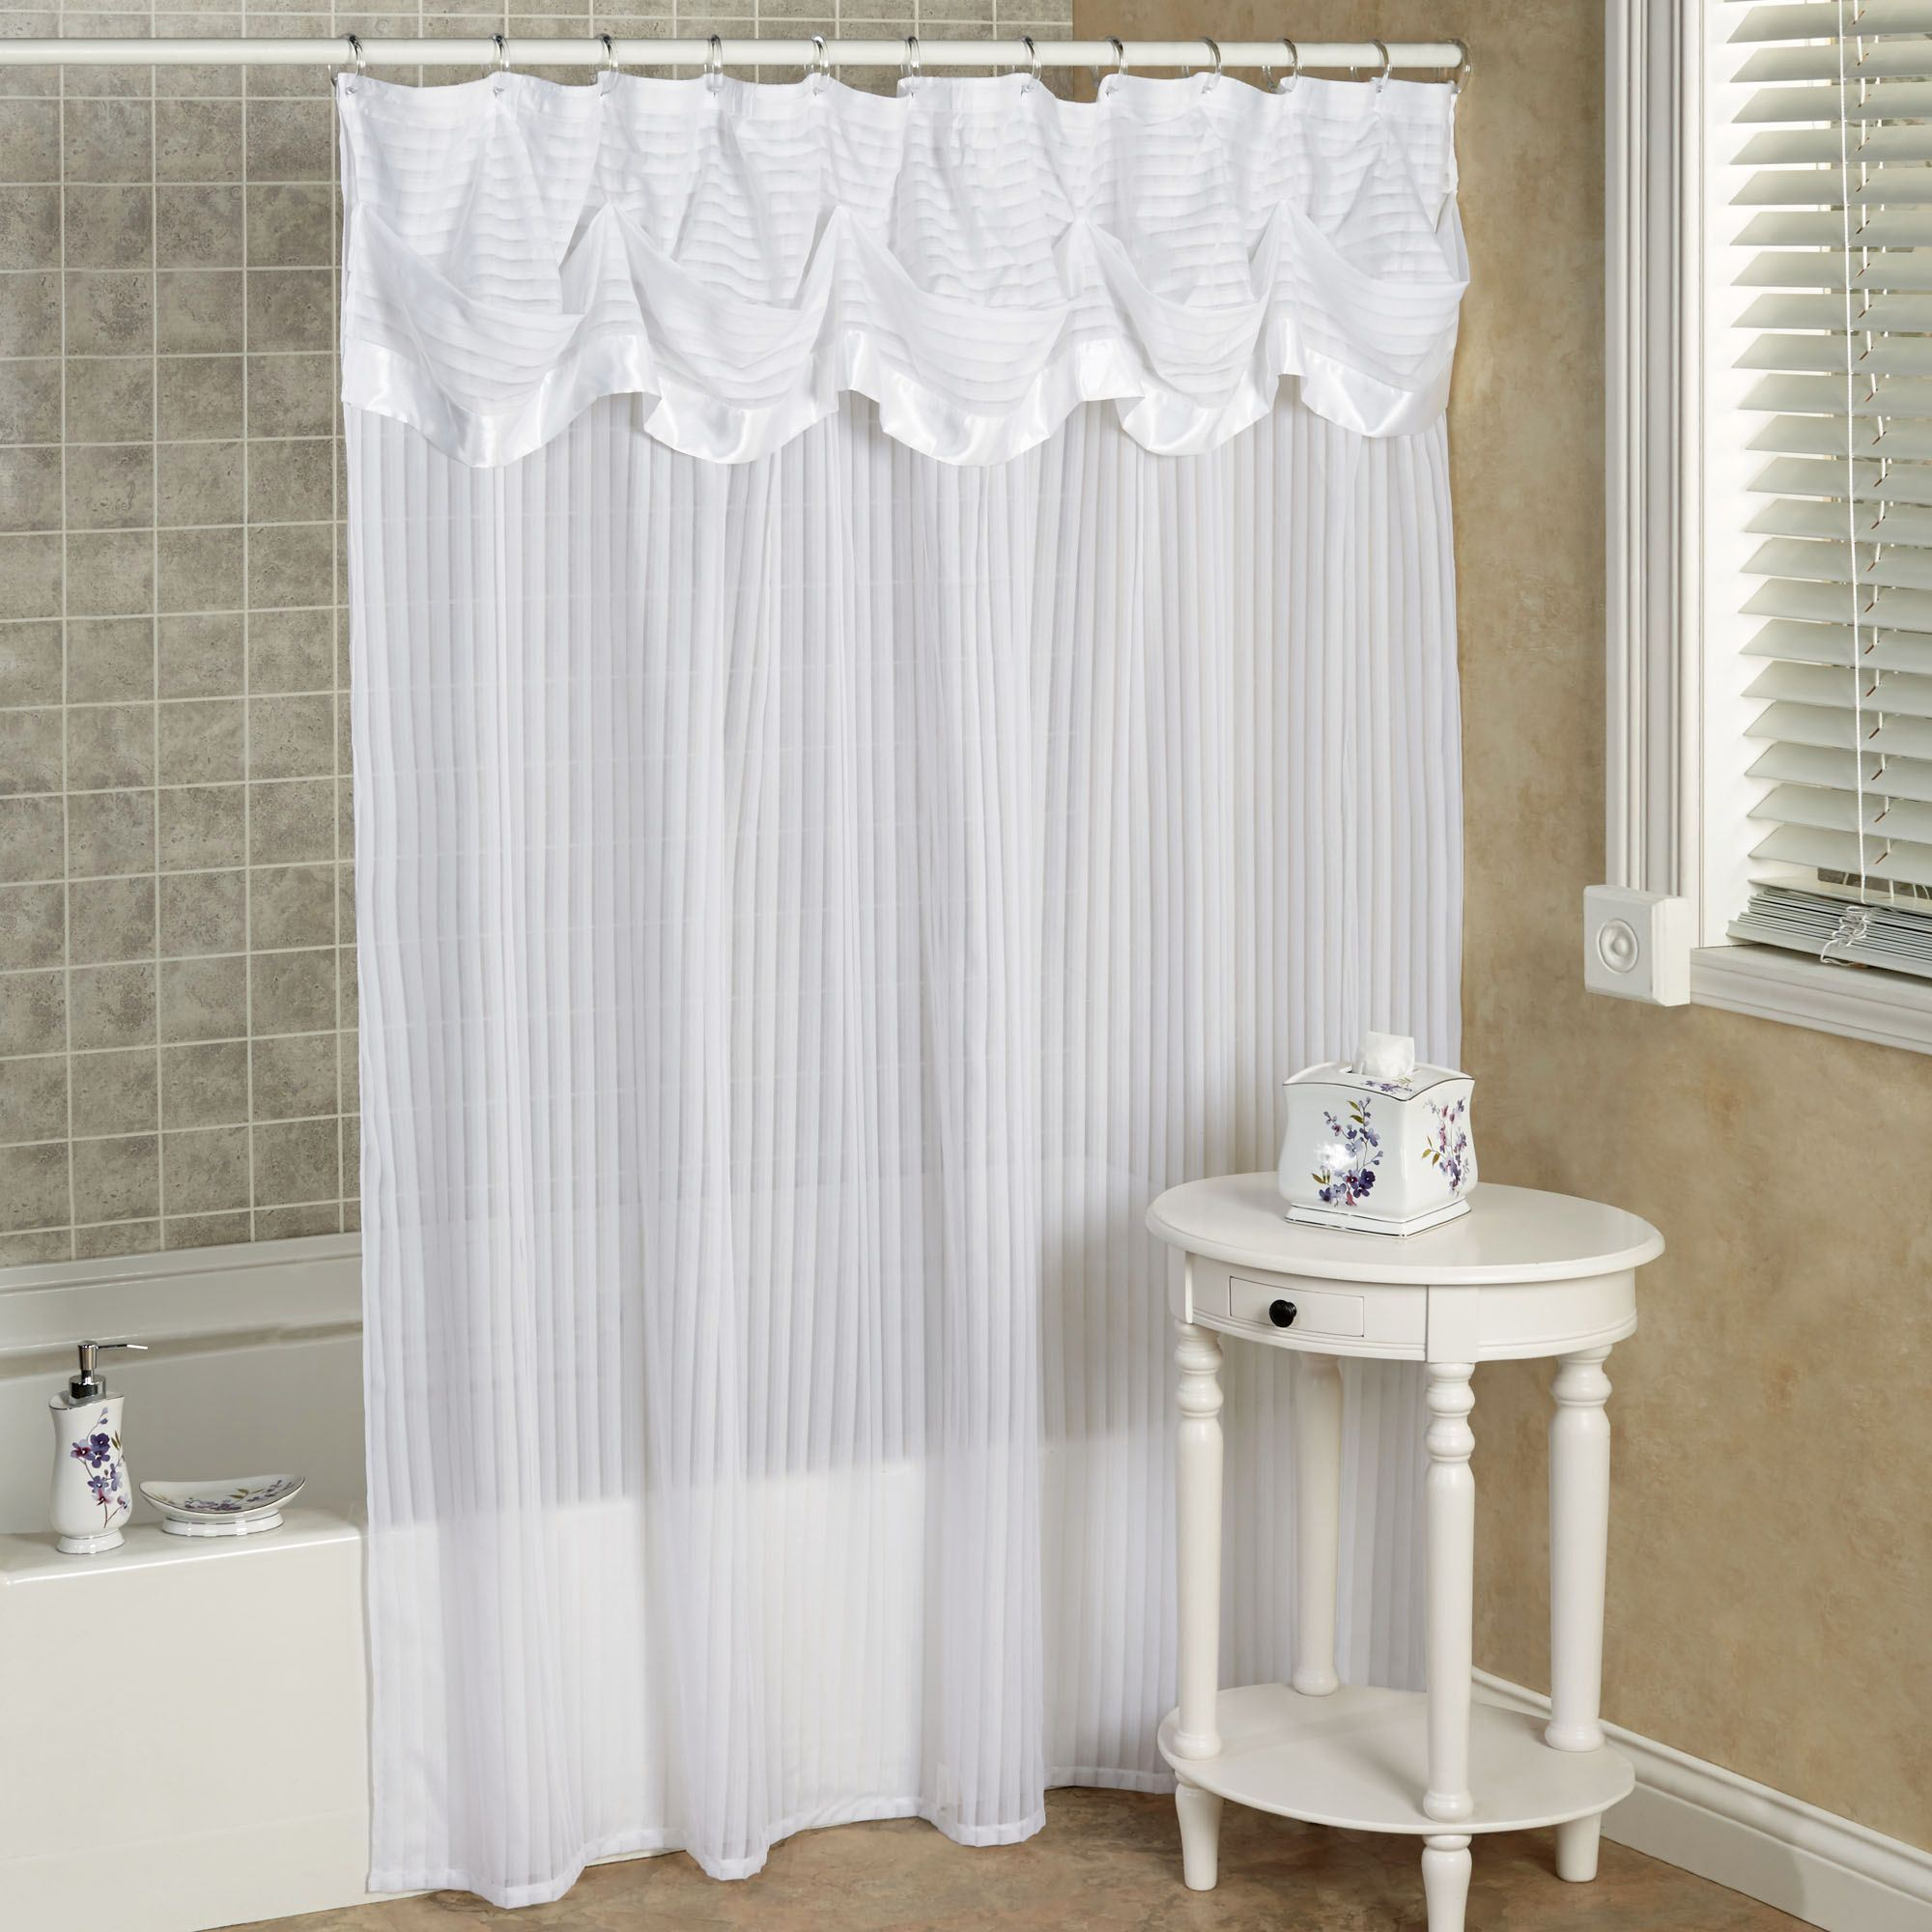 Lace Shower Curtain With Attached Valance • Shower Curtains Ideas